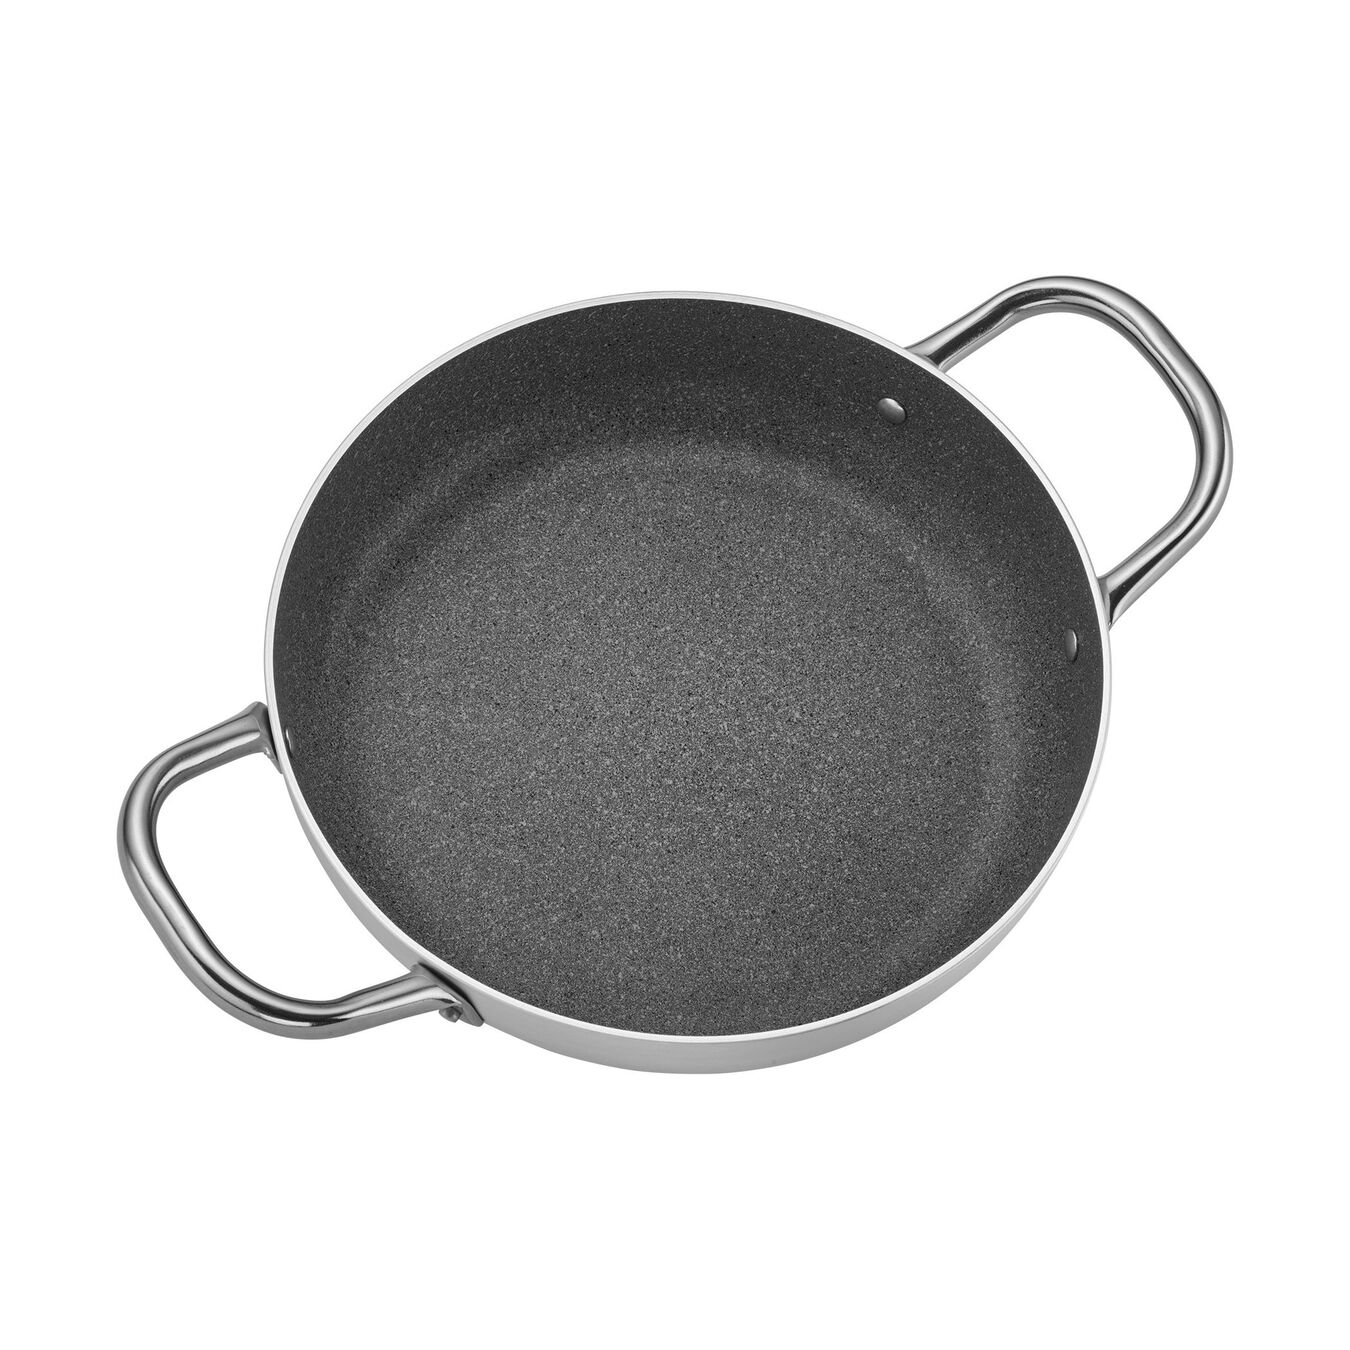 12.5-inch, Saute pan,,large 1